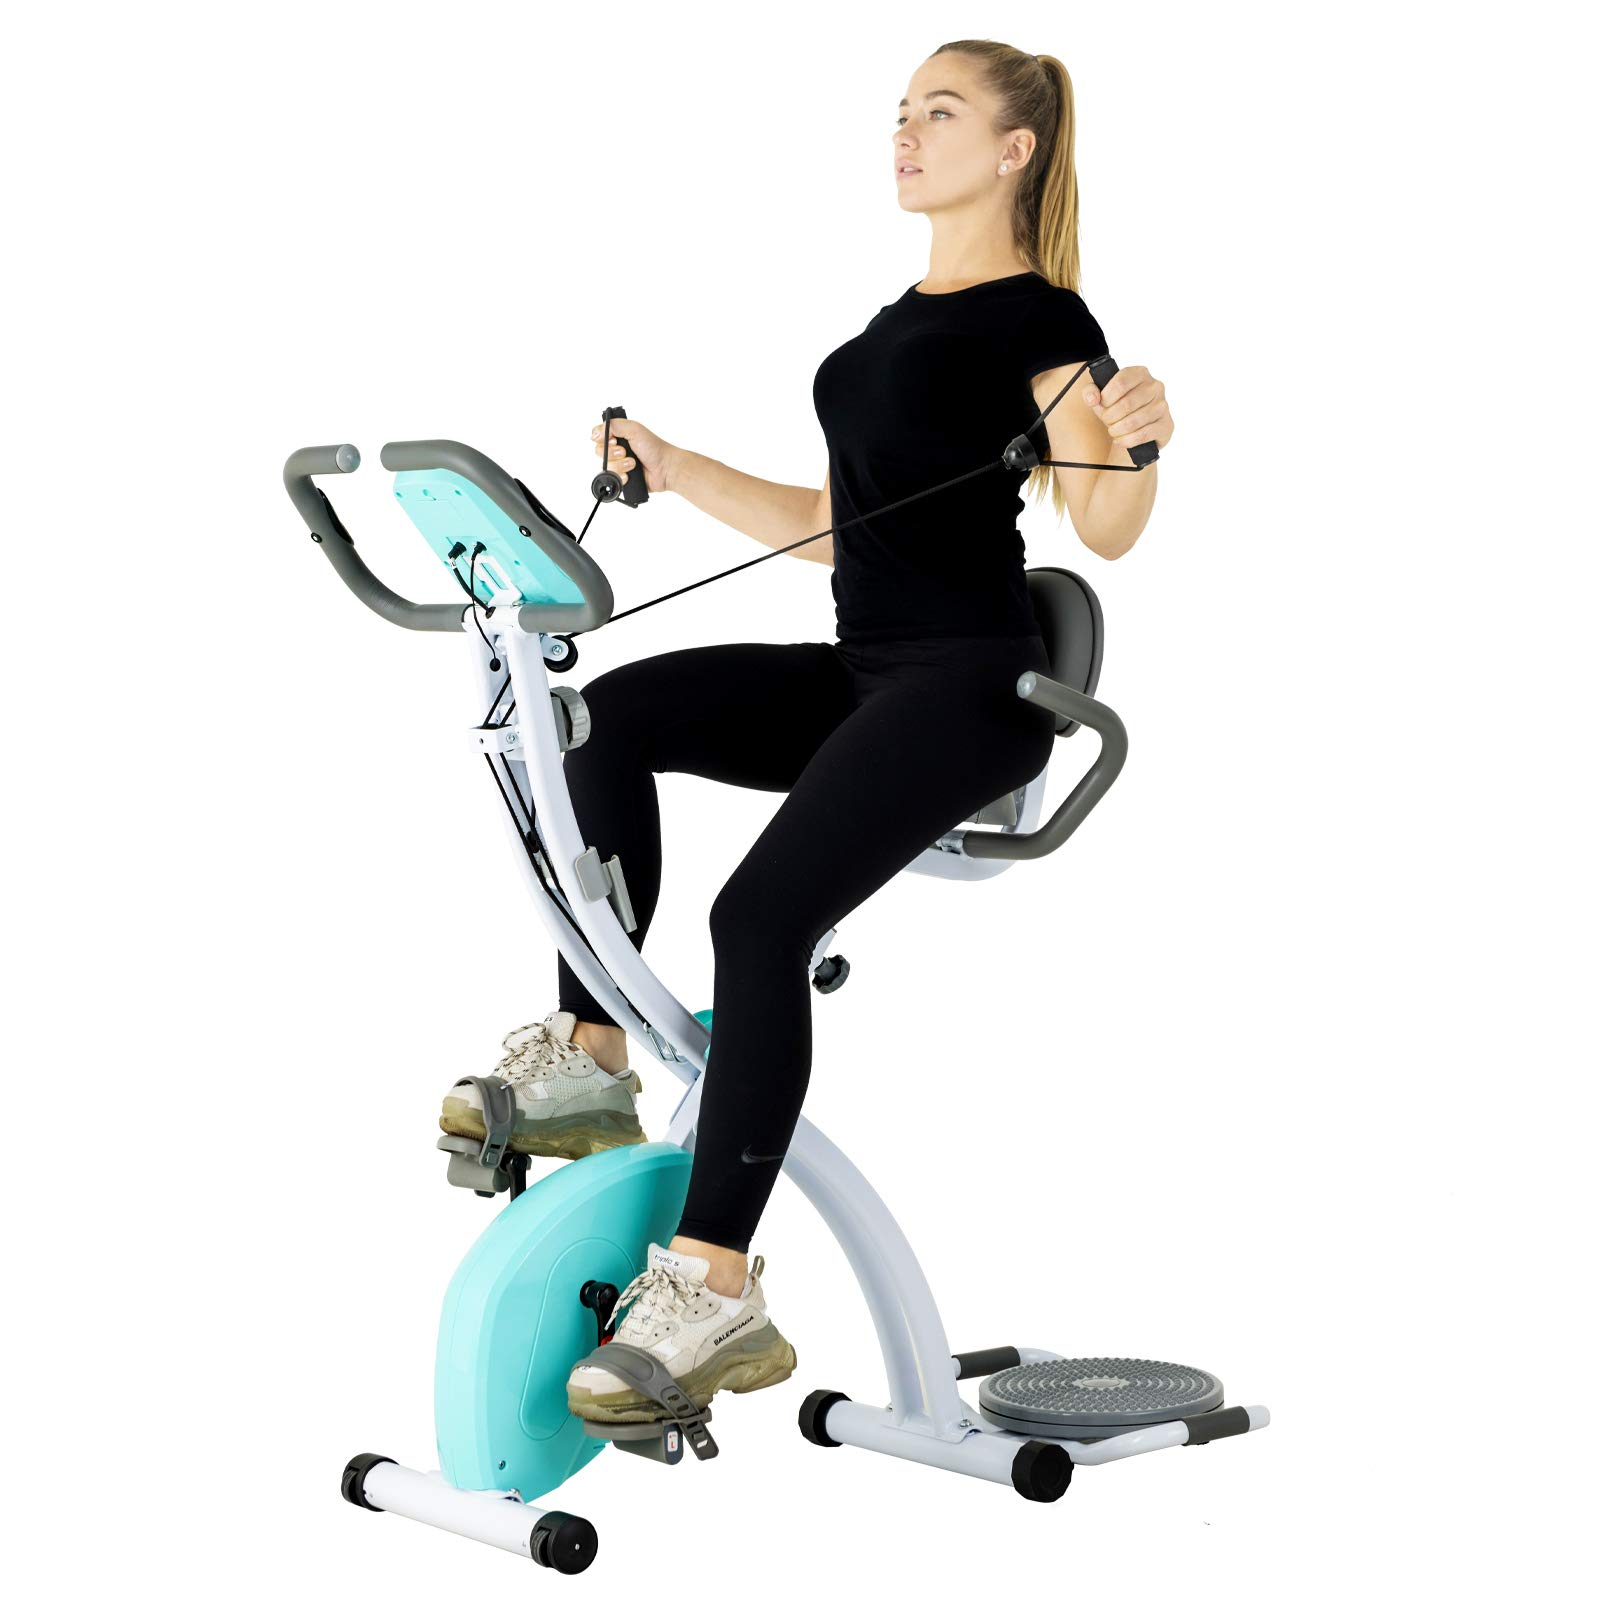 Murtisol Folding Exercise Bike Compact Foldable Stationary Bike Magnetic Resistance Control W/ Twister Plate, Arm…